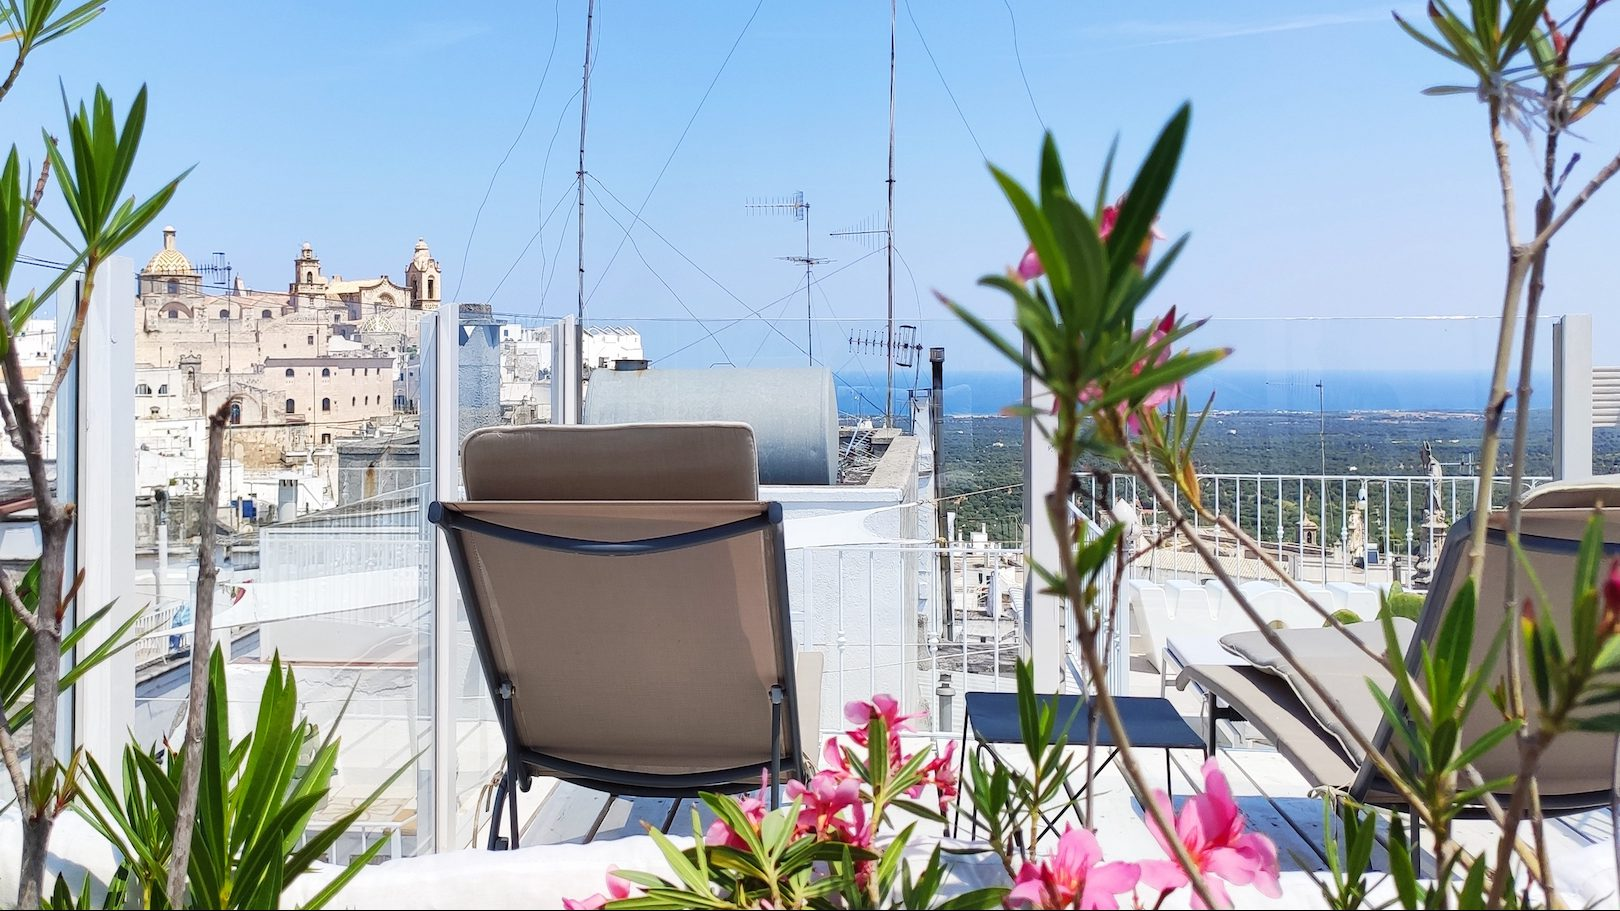 Glass barrier allows for spectacular view from Casa dei Fiori holiday vacation rental home in Ostuni Puglia